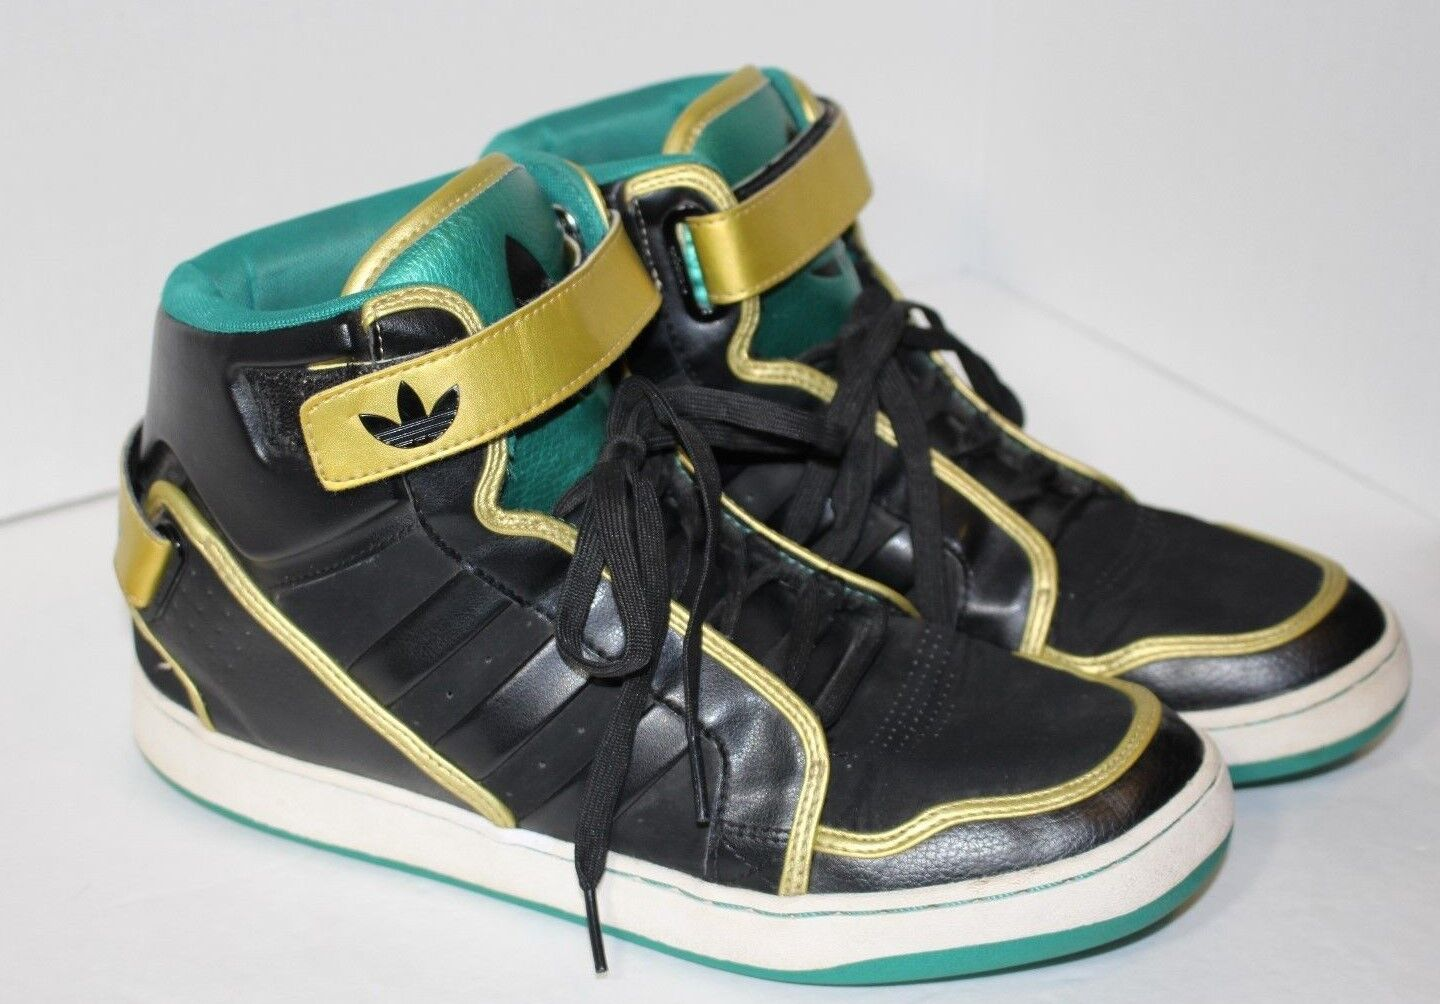 ADIDAS BLACK GREEN GOLD MARDI GRAS SPECIAL EDITION SHOES MENS Price reduction